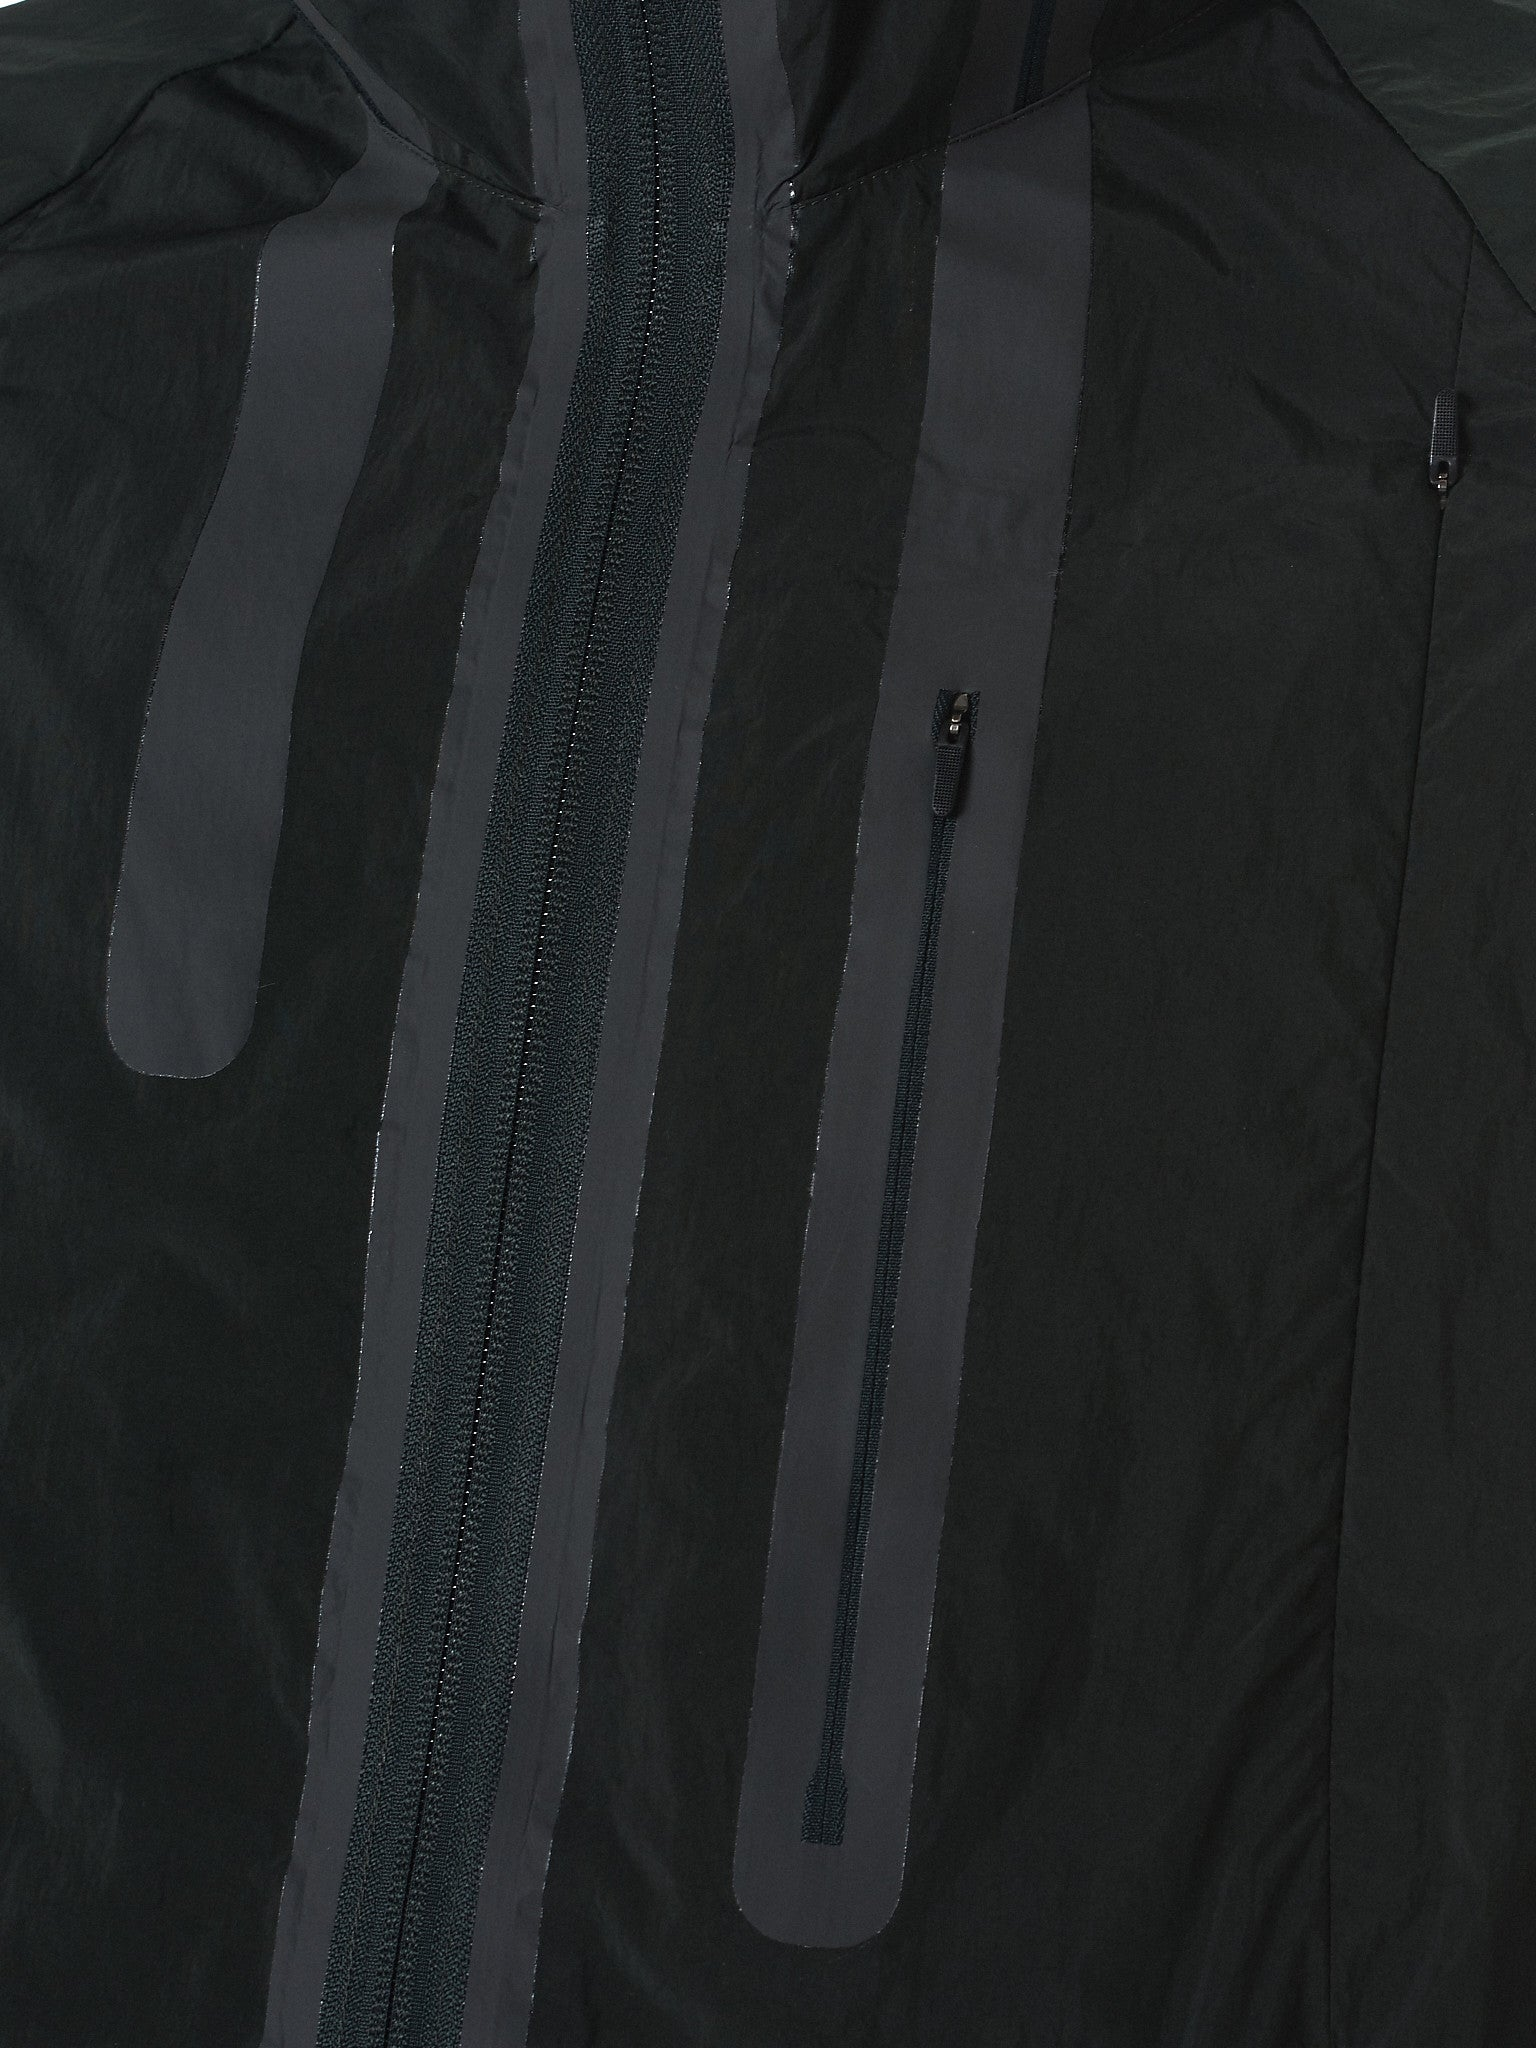 Y-3 - Hlorenzo Detail View